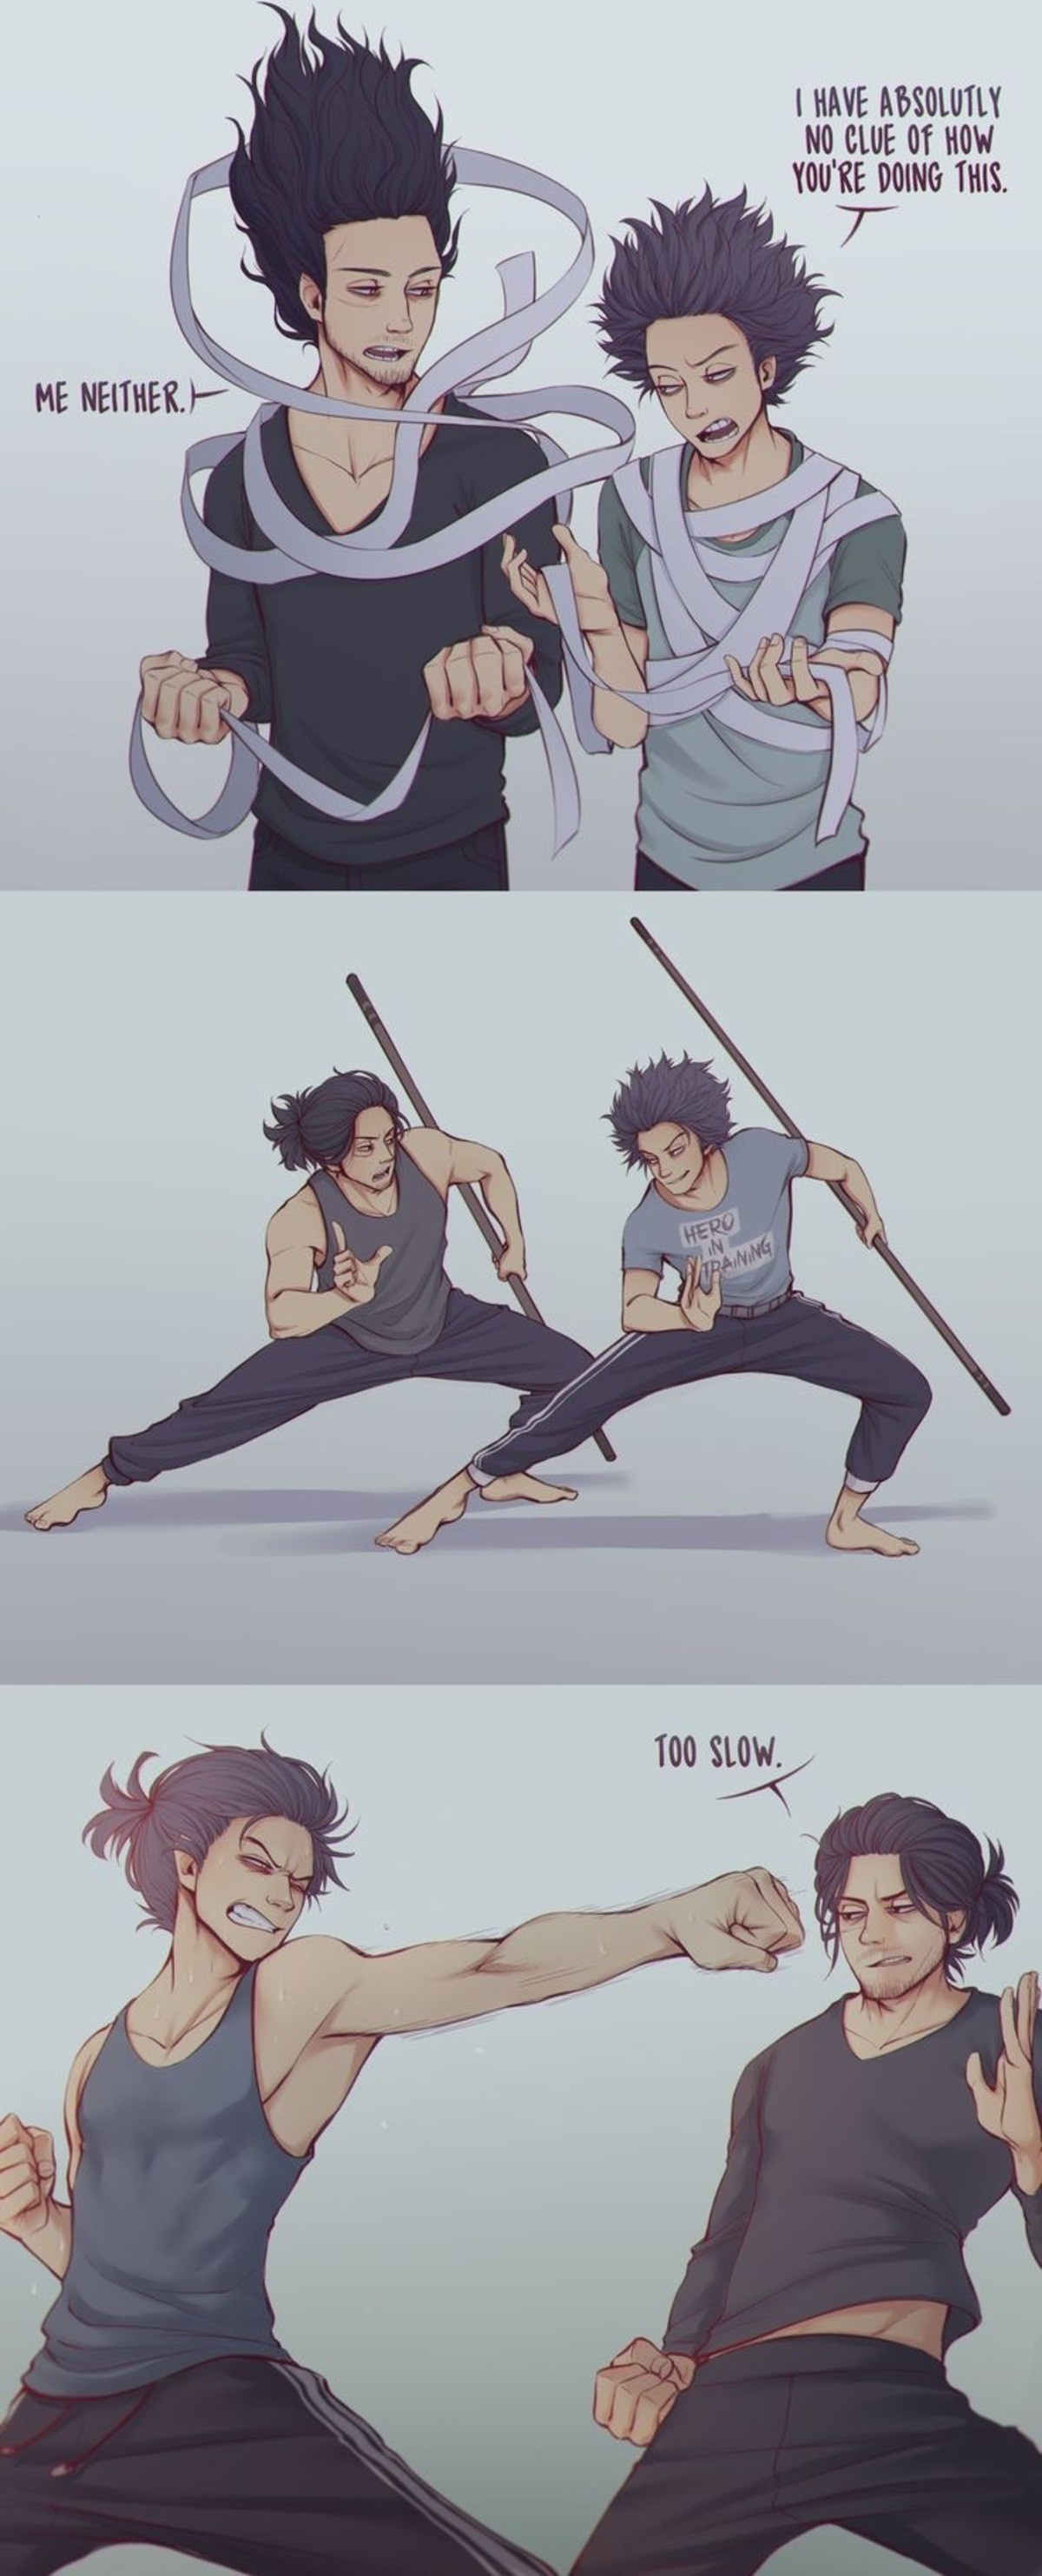 Eraser Sensei And Apprentice Shinso. Cool lil comic. Enjoy. join list: altanimecomps (165 subs)Mention History. ABSOLUTLY W Of HOW vows M.. That with the bandages is legit. Like, he moves them (and his hair) like he has telekinesis or something. You can see them flair up into the air when he's attac